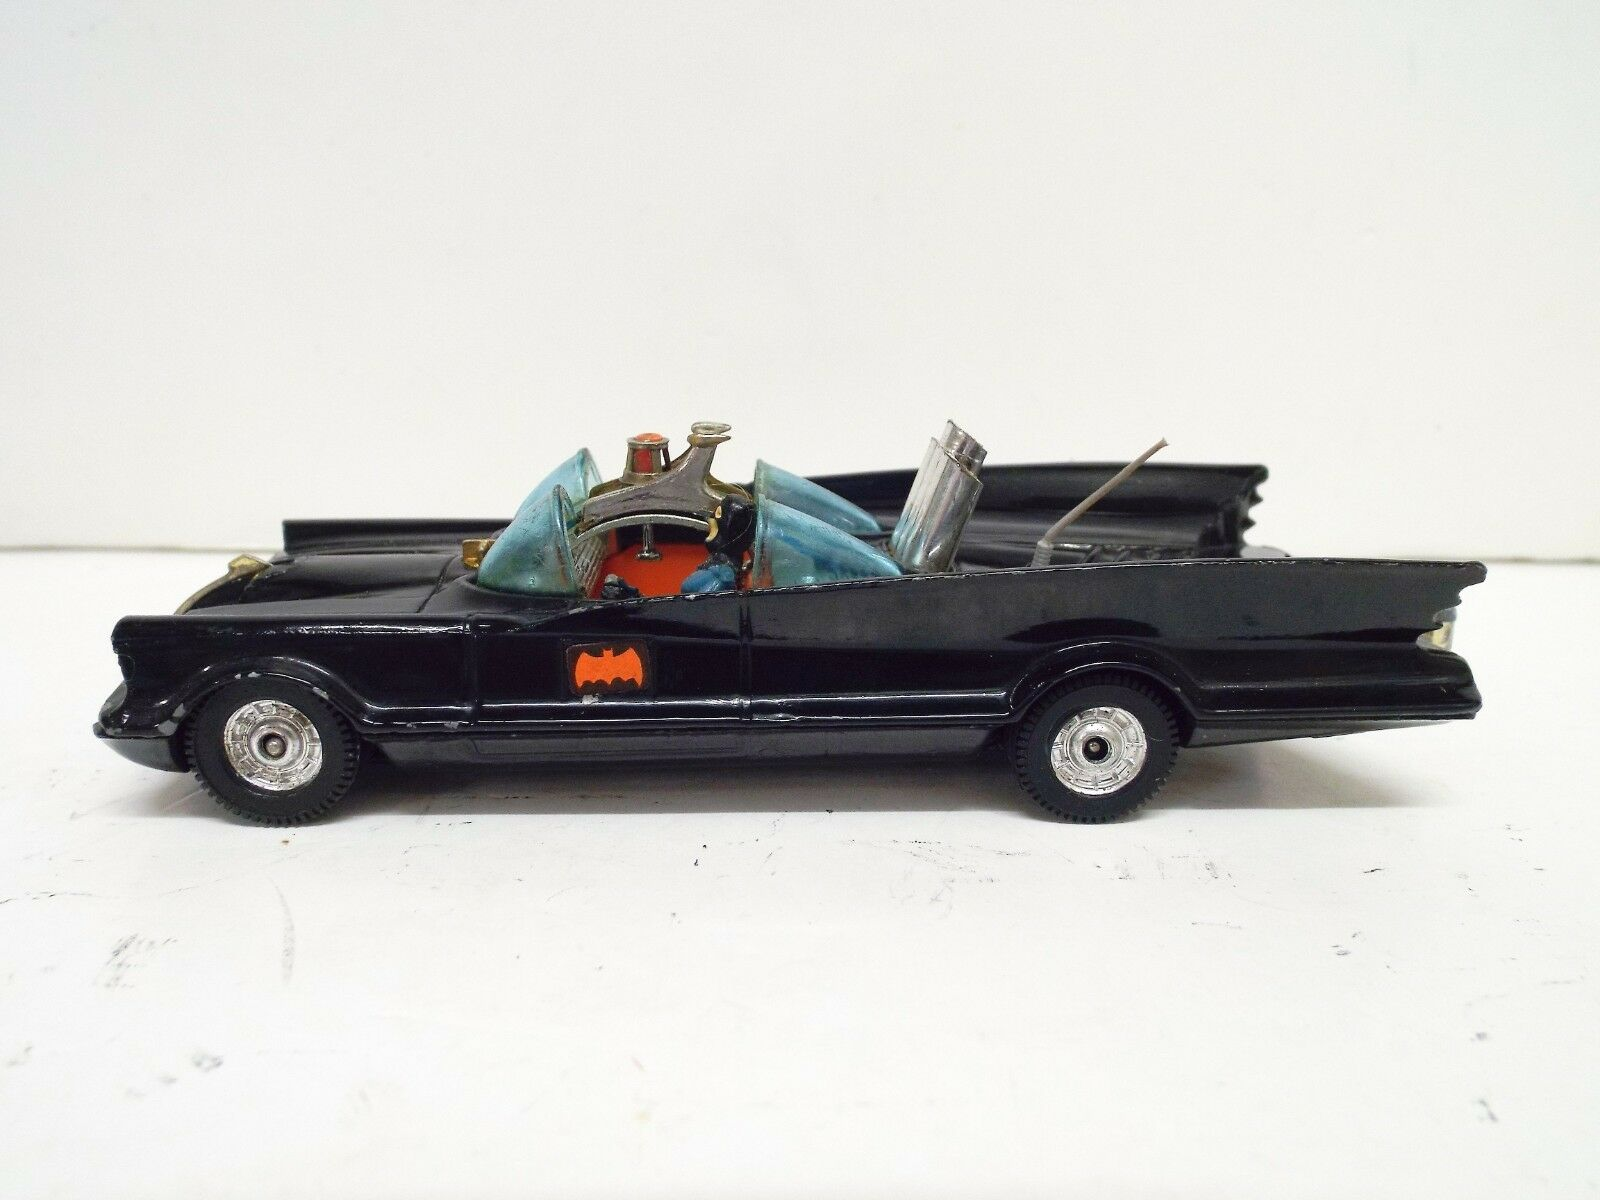 CORGI 267 BATMOBILE 1976 Whizz roue version avec Batman EXC carton (C412)